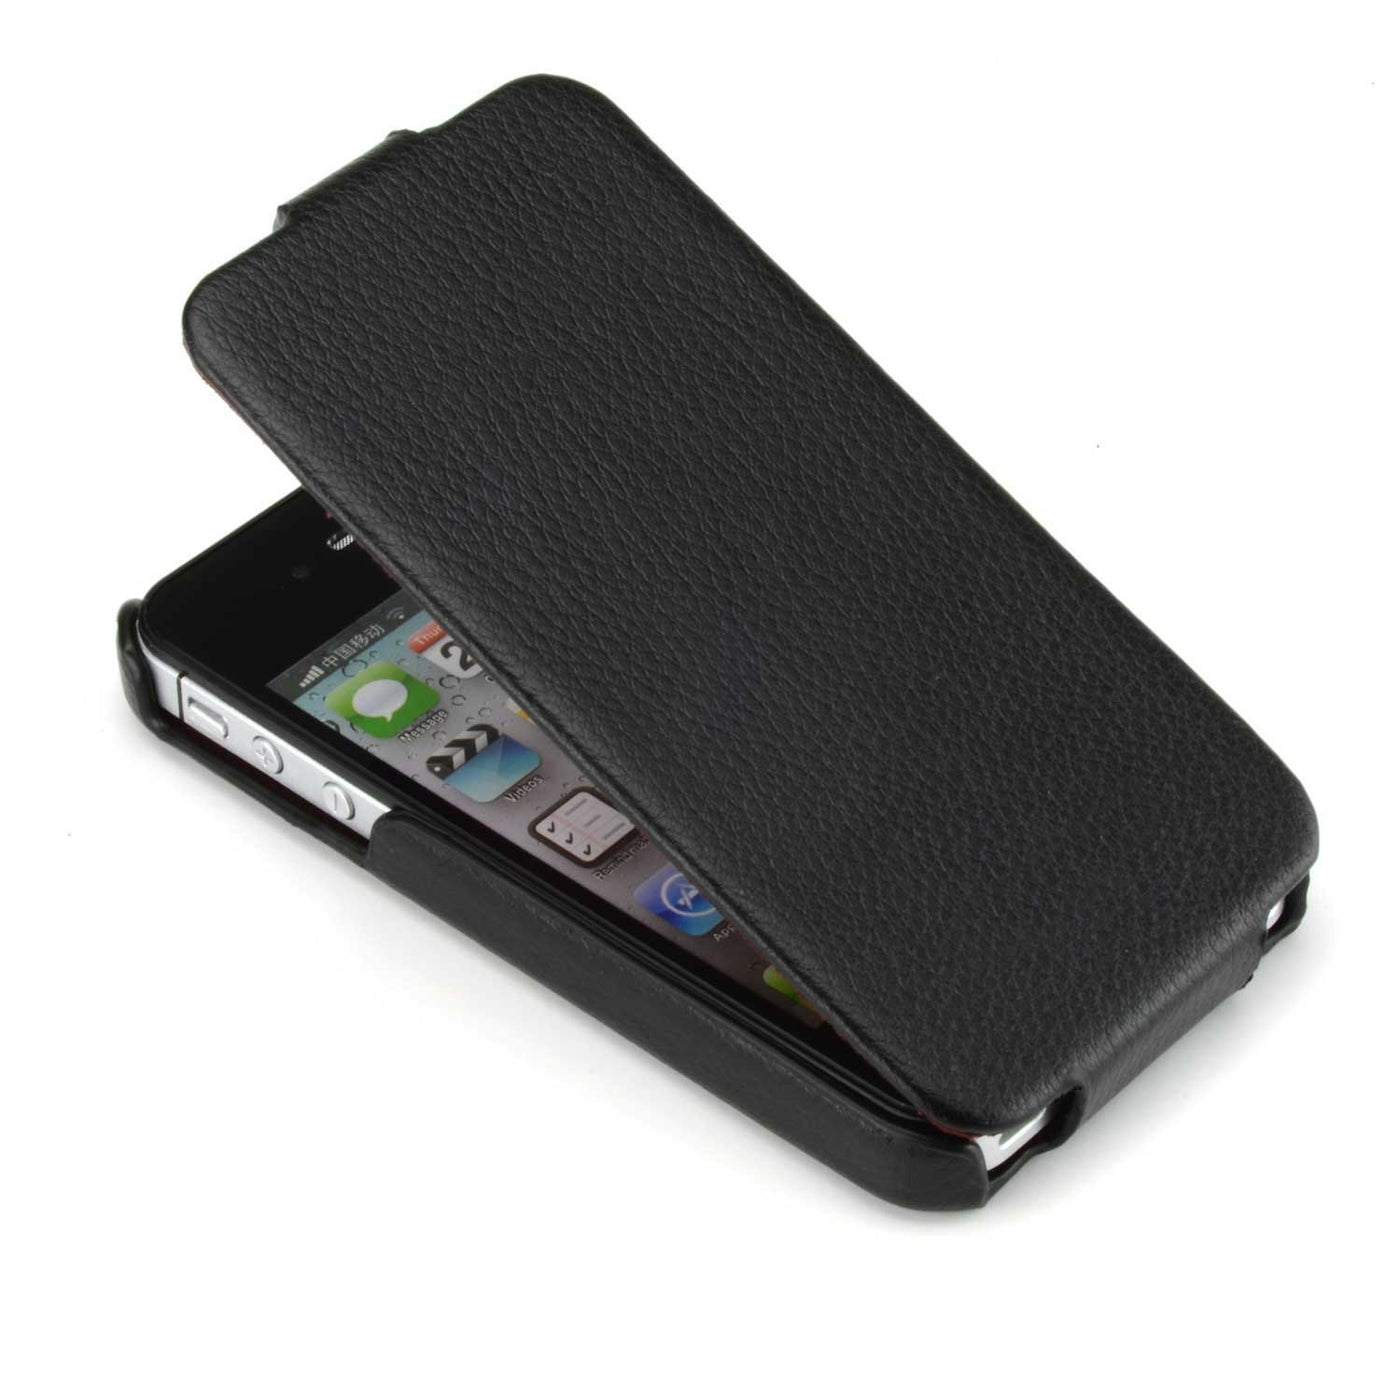 new style 3d94d 7c9af HOCO Duke Advanced Flip Leather Case for iPhone 4/4s - Black